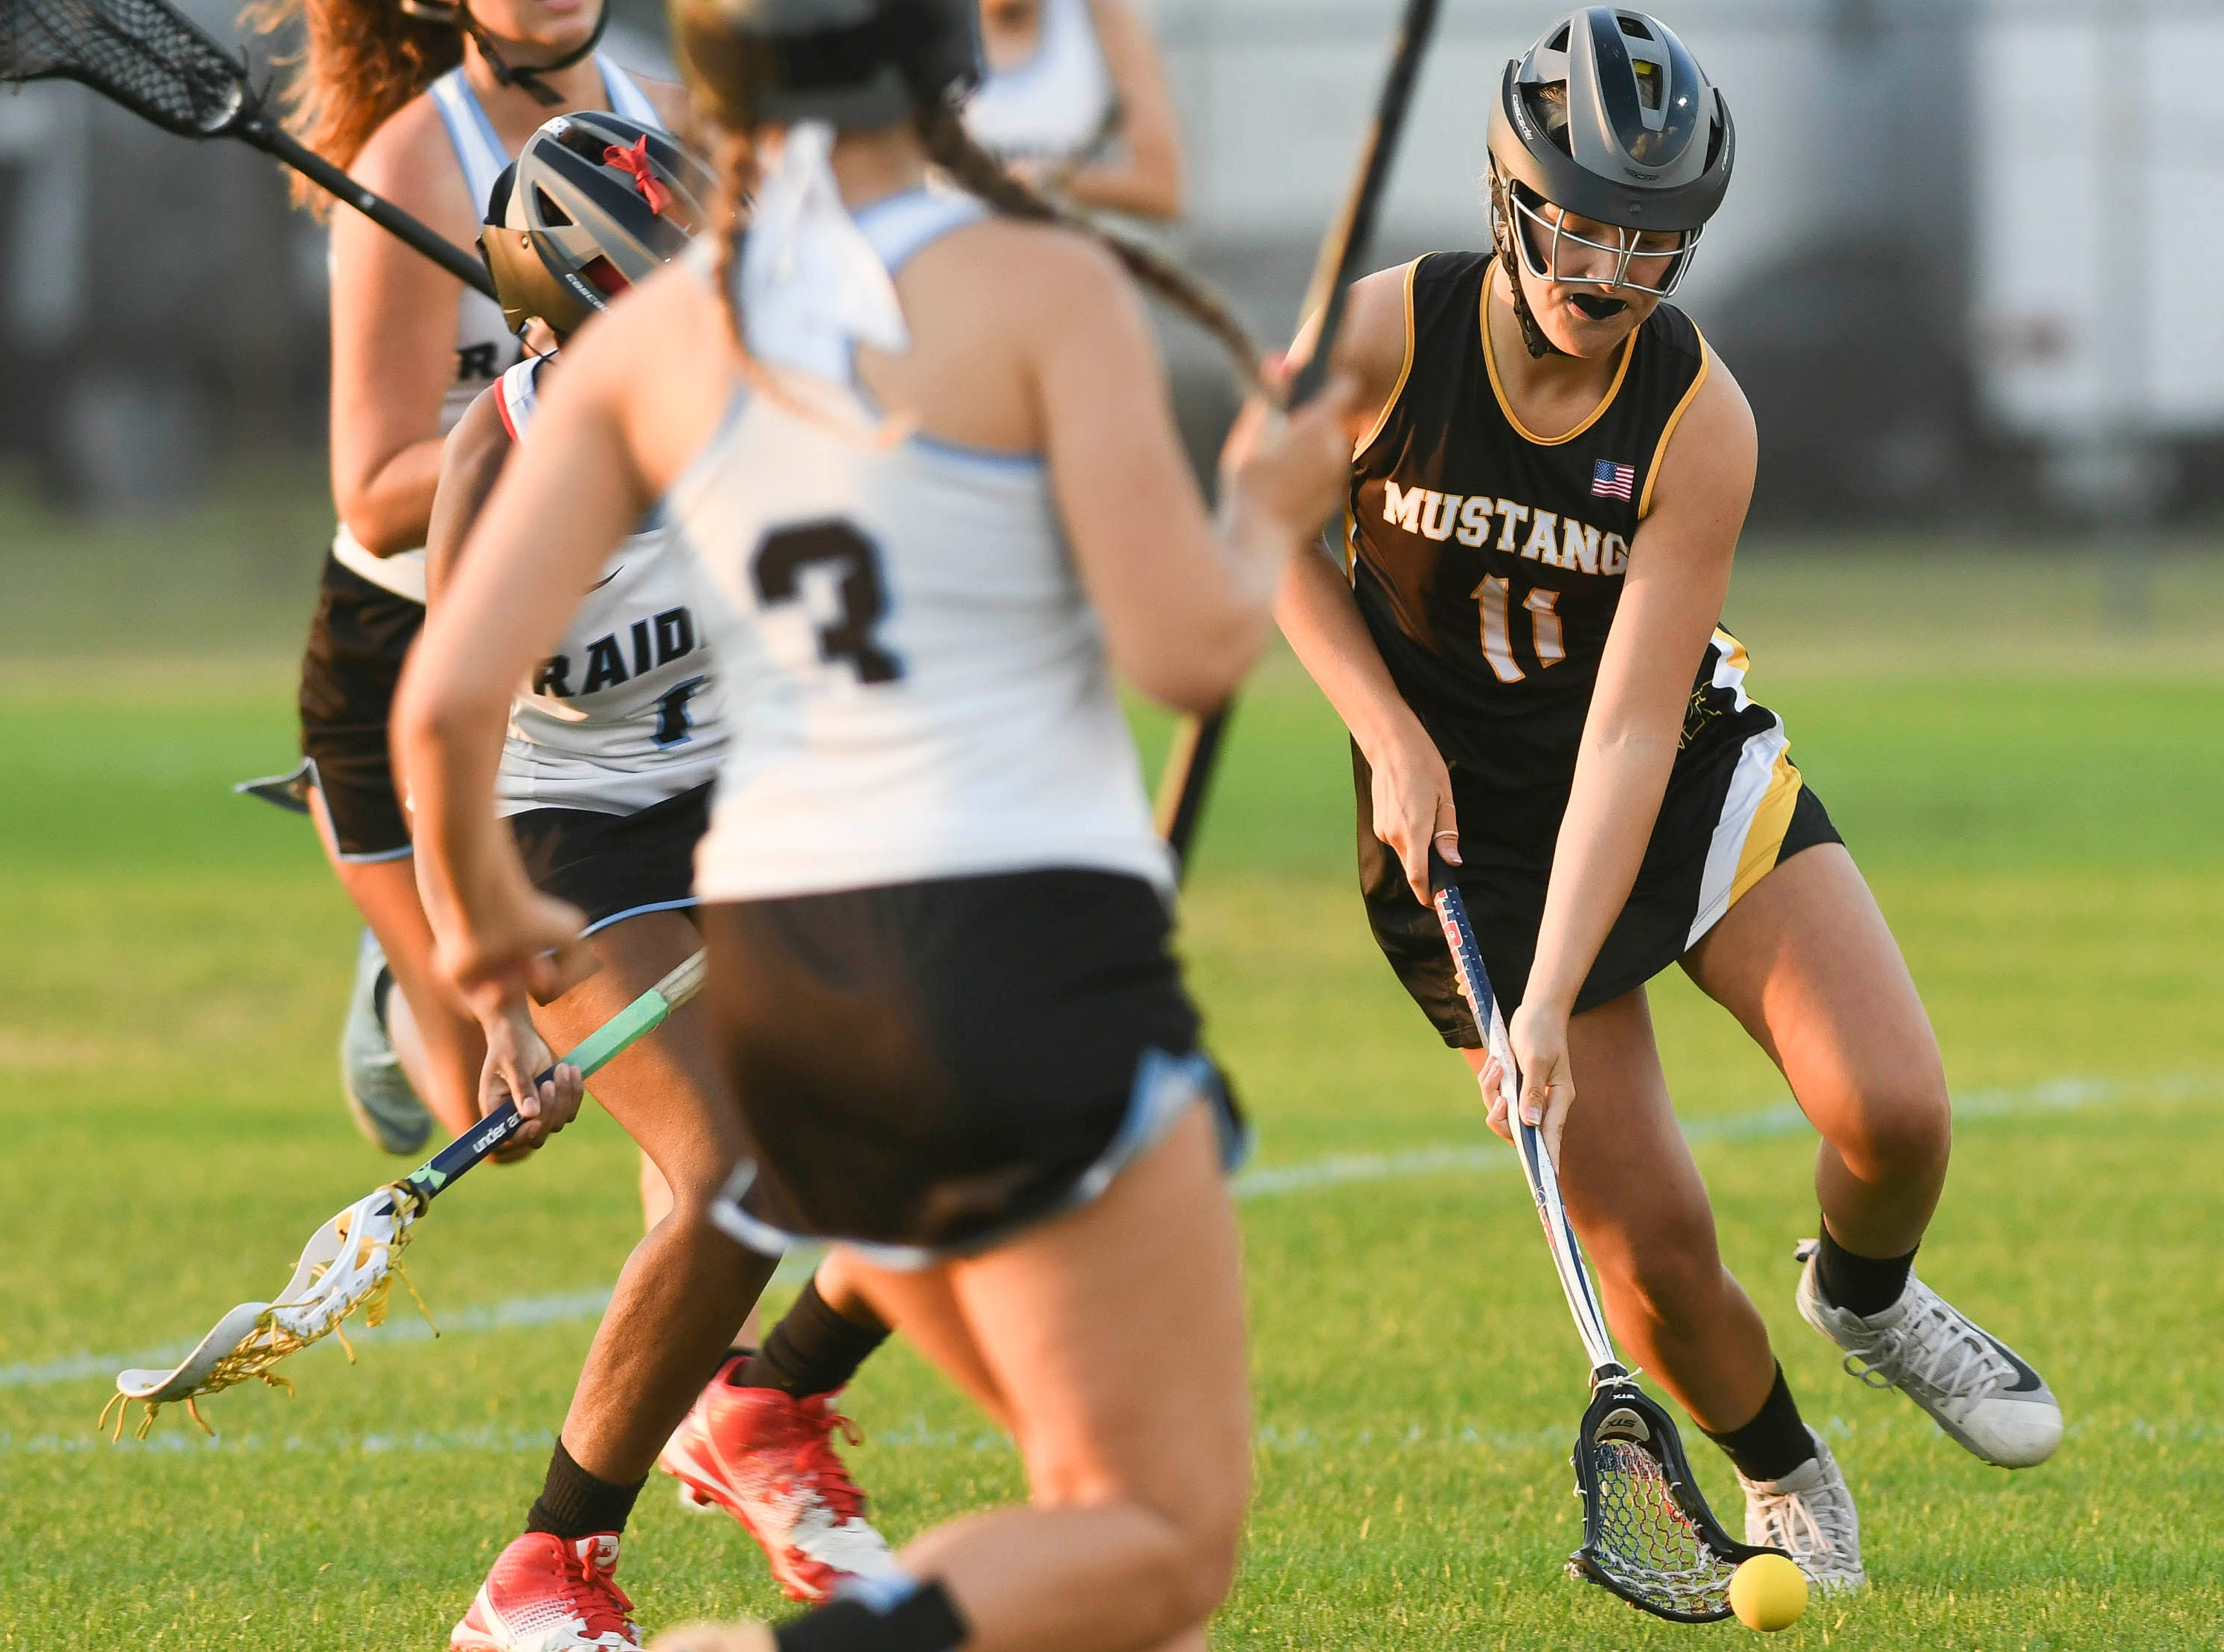 Keely Hannam of Merritt Island scoops up the ball during Tuesday's game against Rockledge.